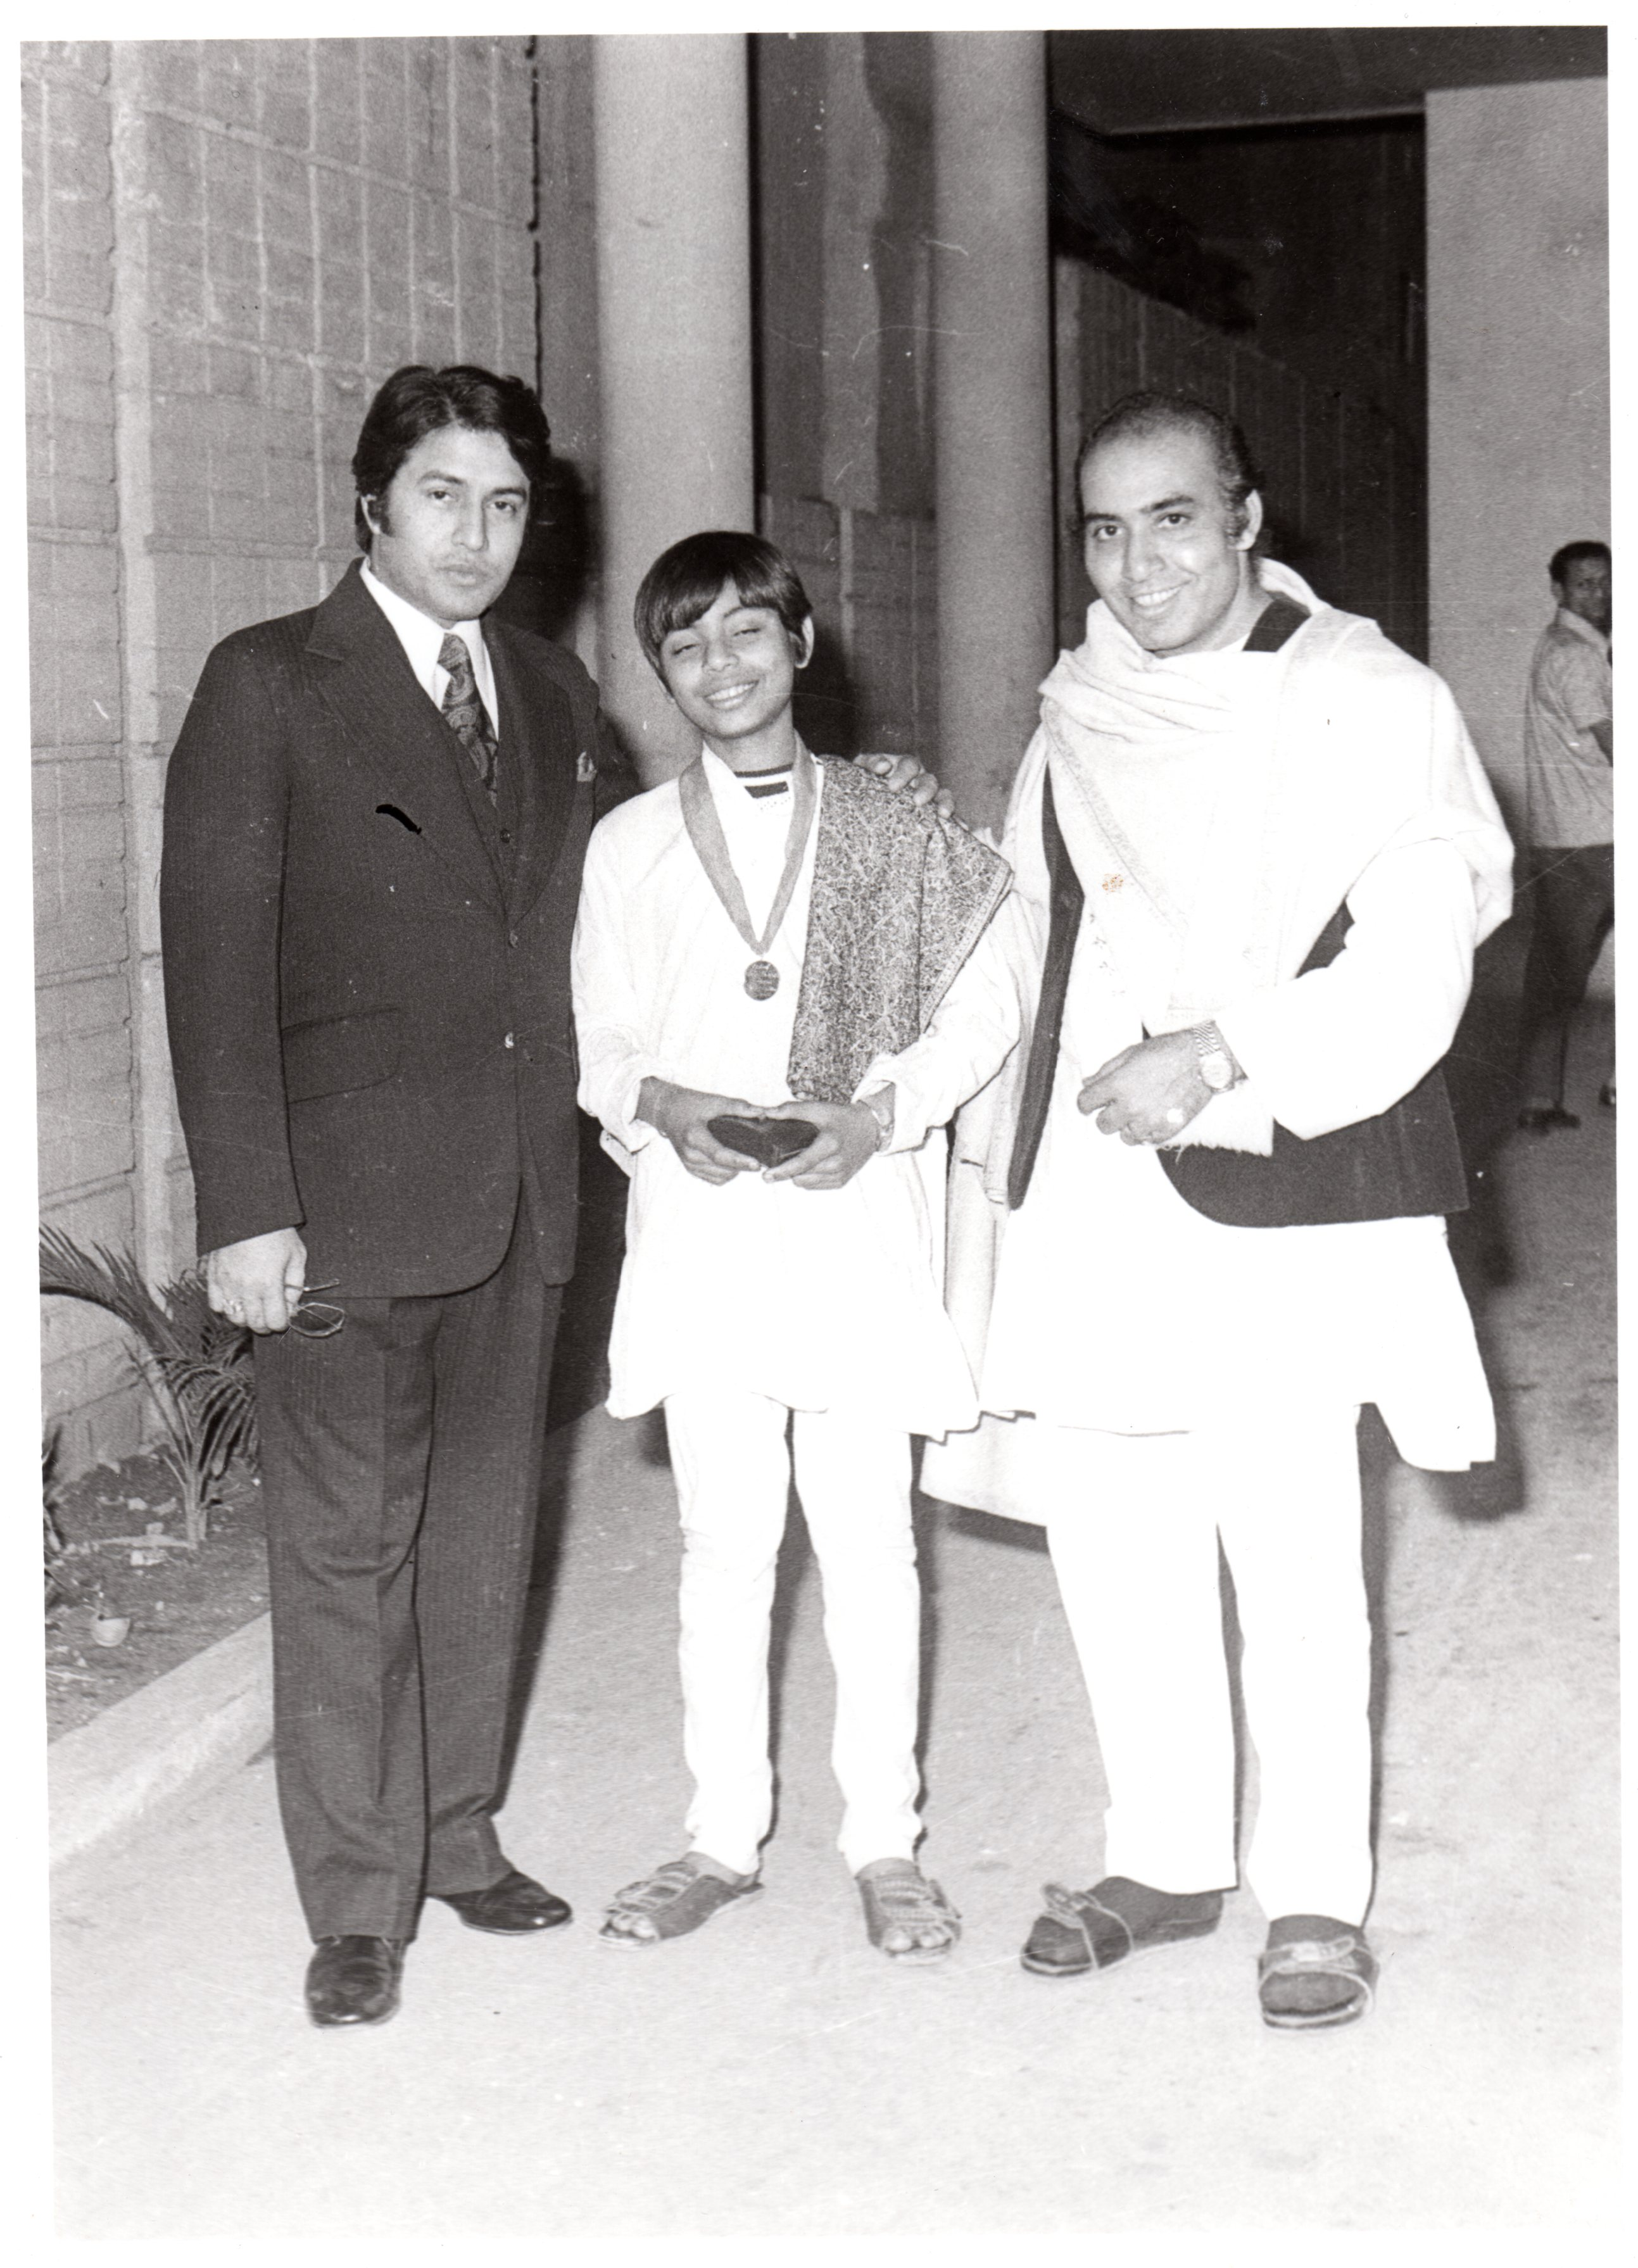 1973 with father receiving gold medal from Ustad Amjad Ali Khan